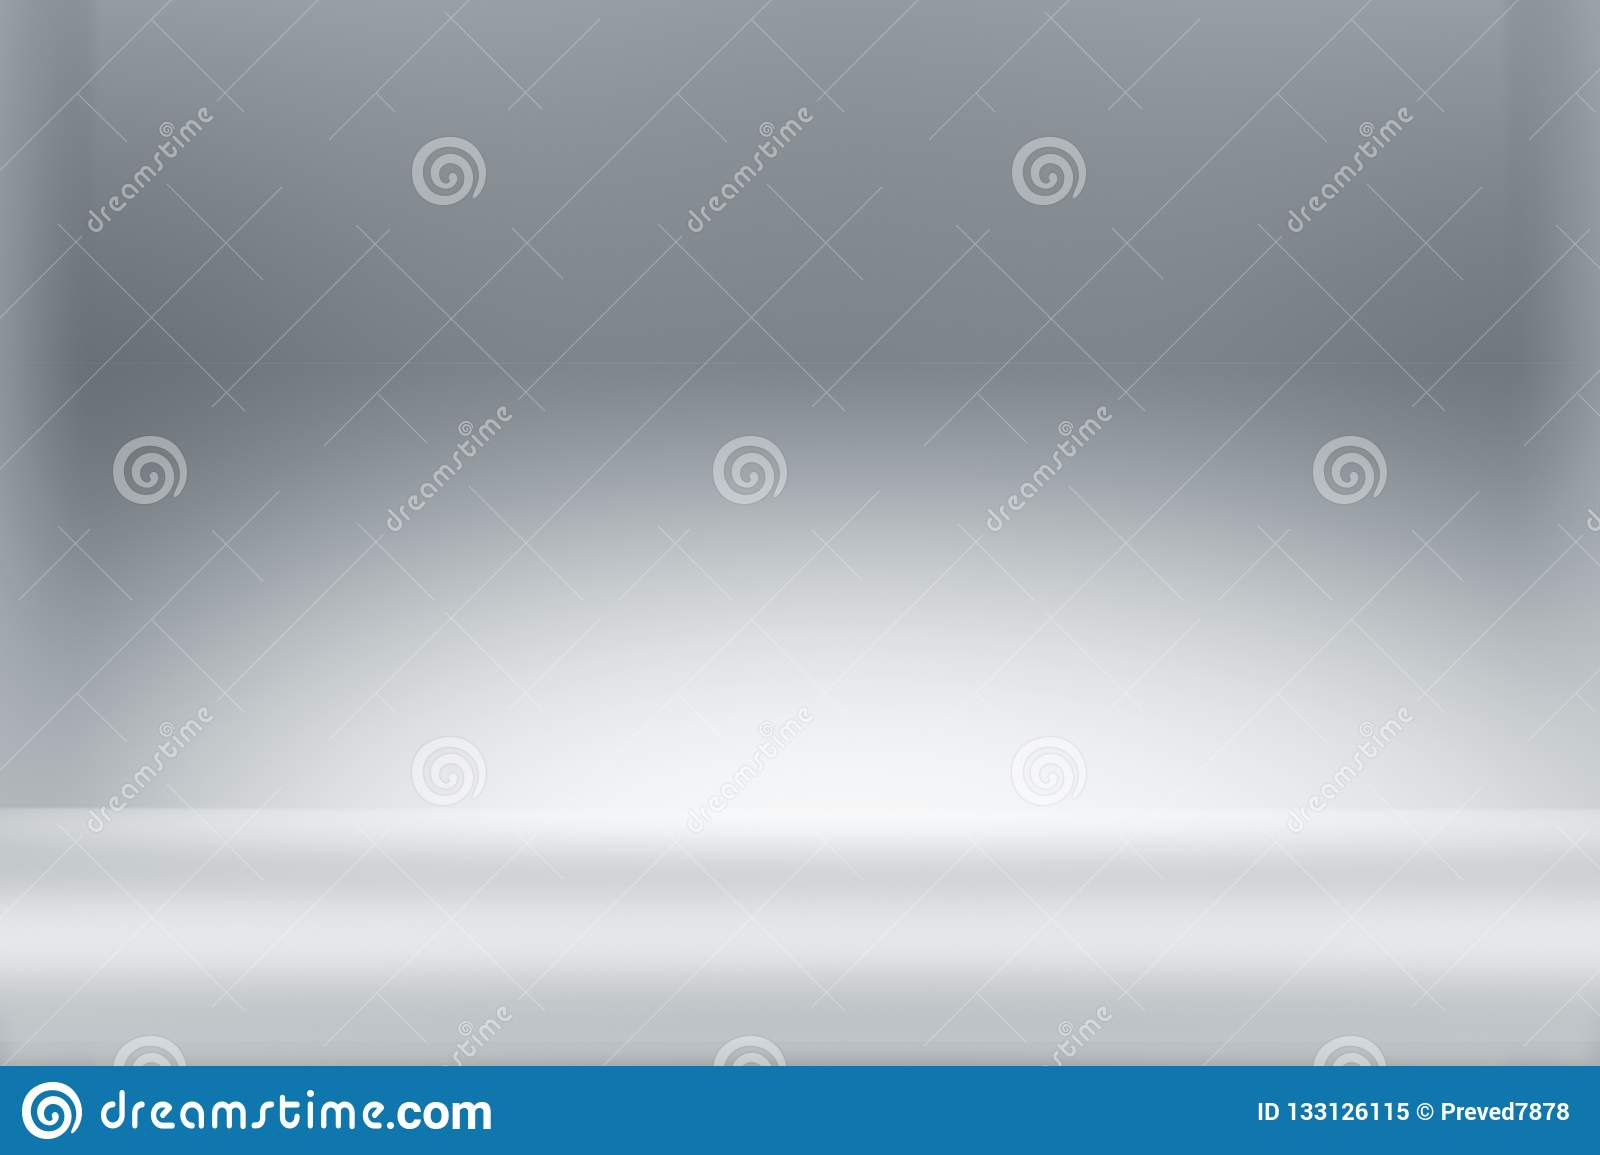 Abstract clean white light studio background with illumination